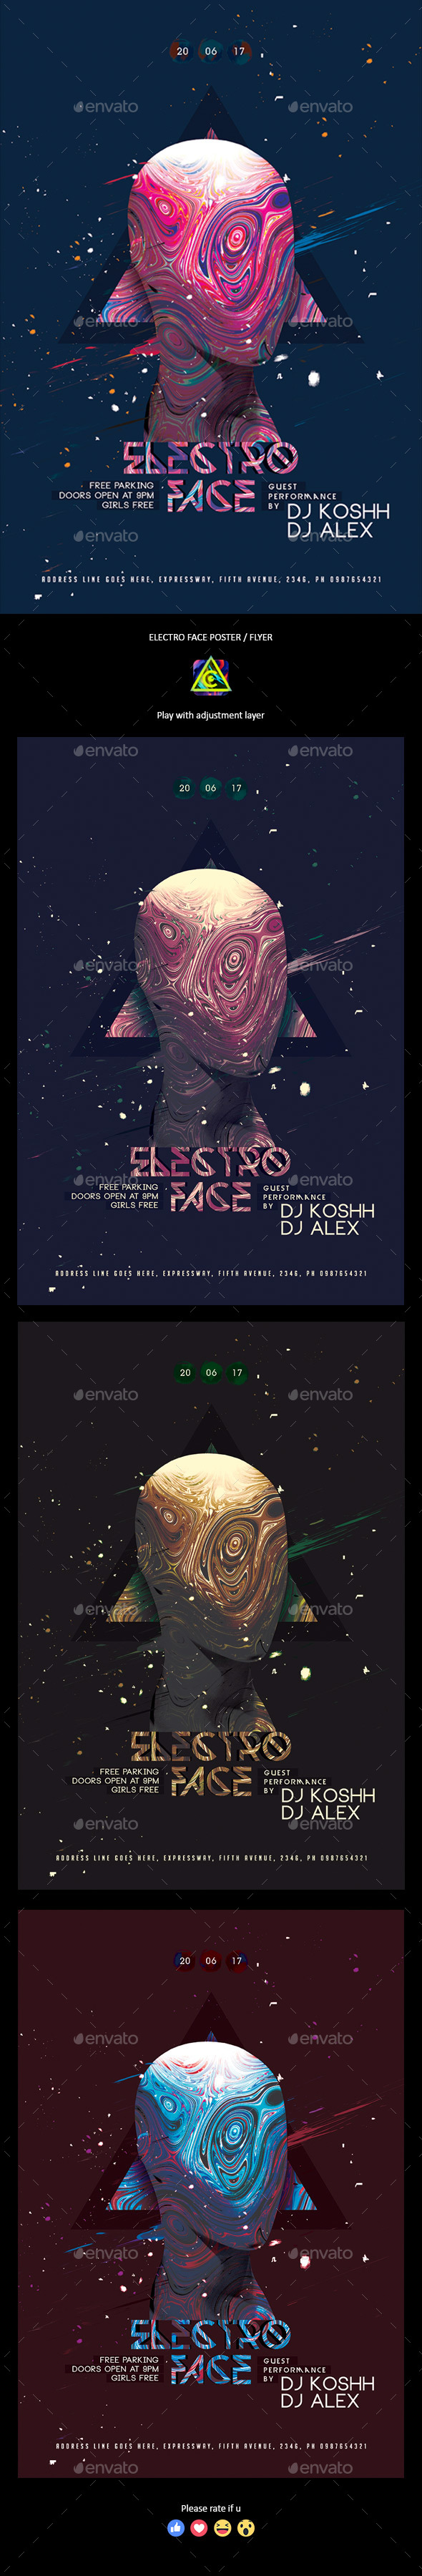 Electro Face Flyer / Poster - Clubs & Parties Events